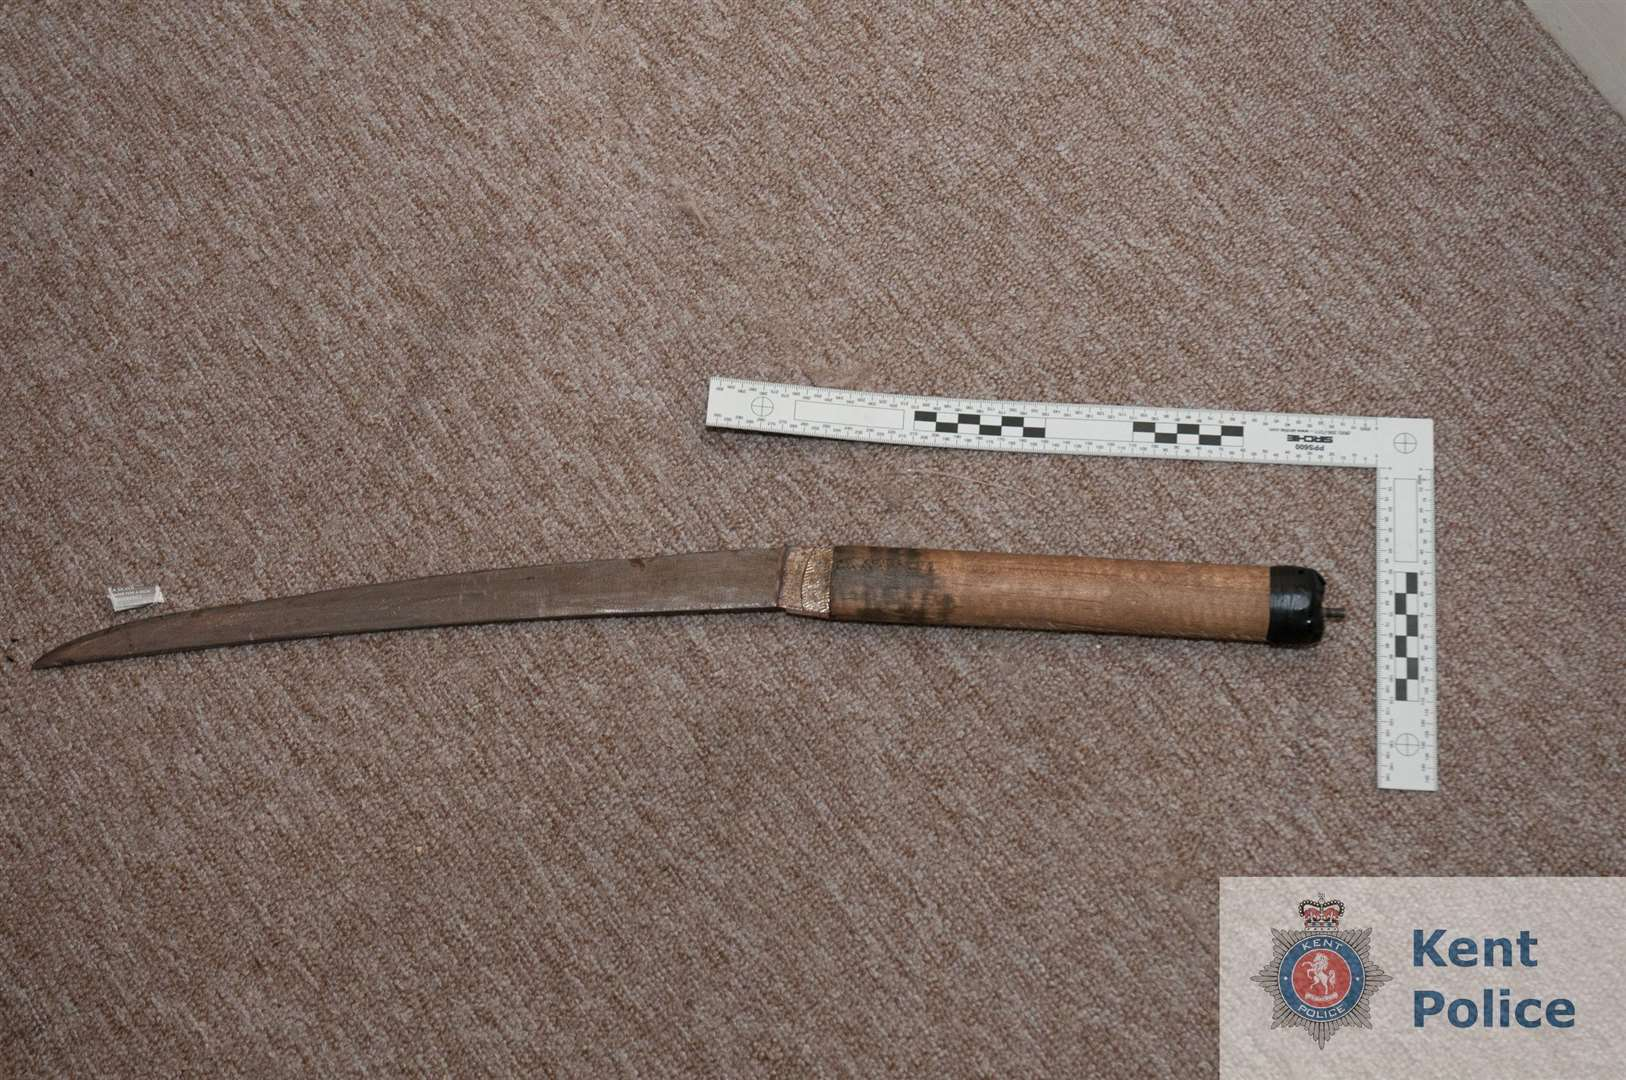 The knife believed to have been used byVictor Maibvisira to threaten two men outside a pub on October 1 (2450184)